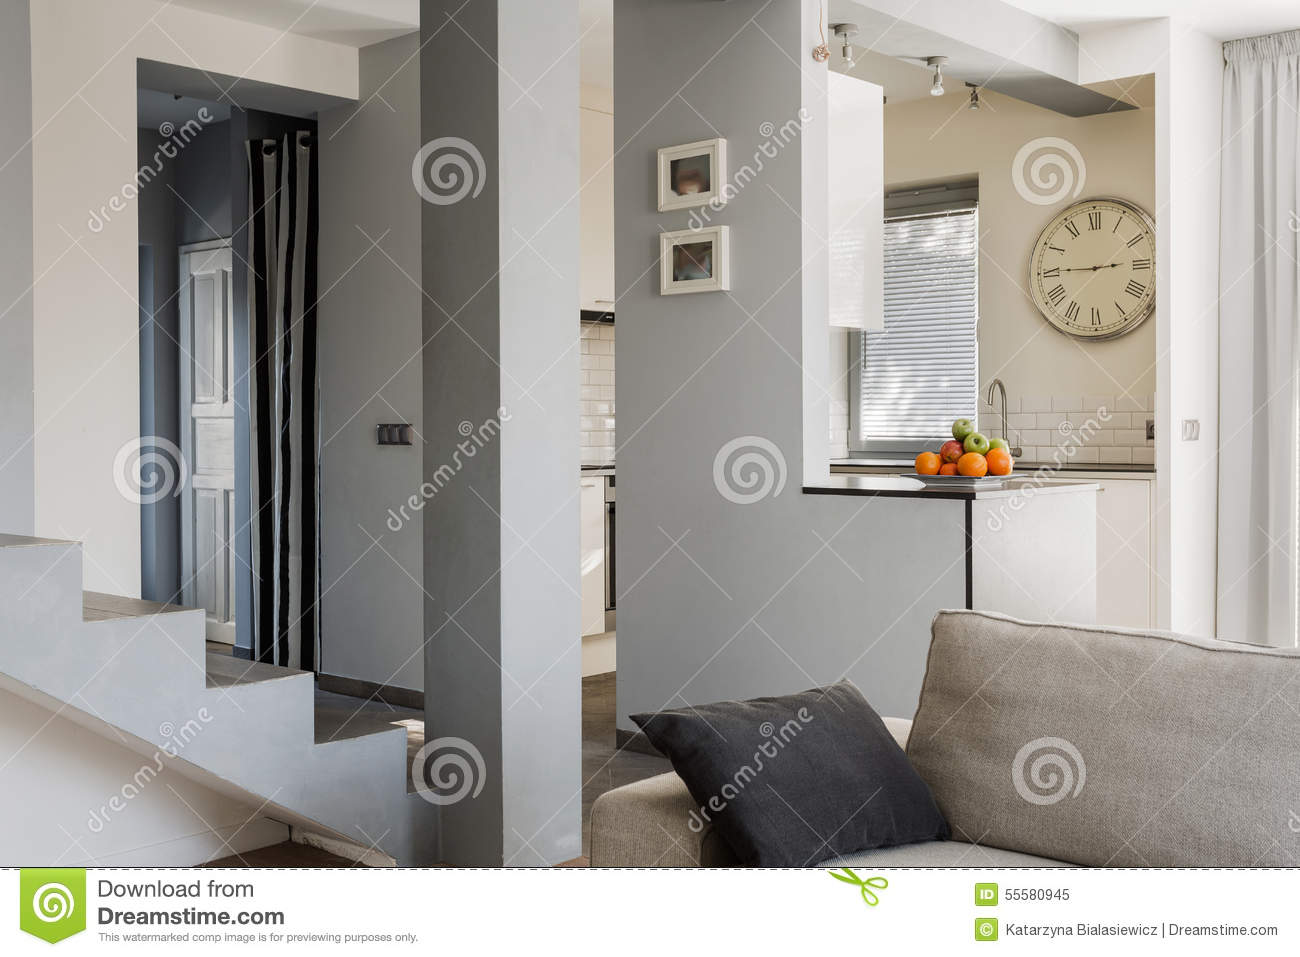 treppe im wohnzimmer stockbild bild von niemand. Black Bedroom Furniture Sets. Home Design Ideas